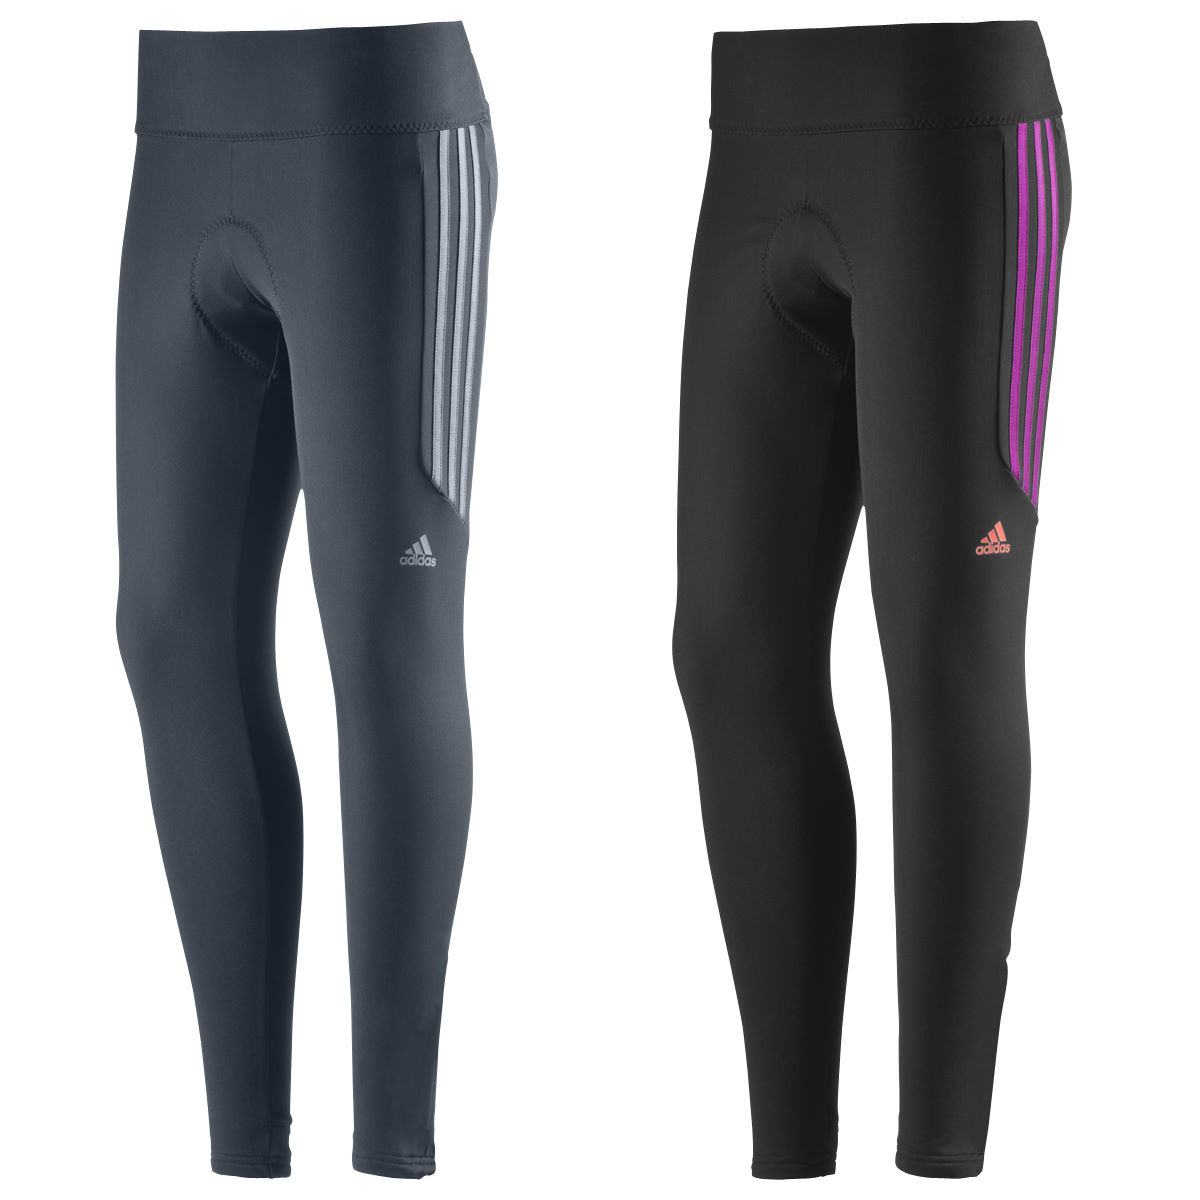 Adidas Women's Response Waist Tight